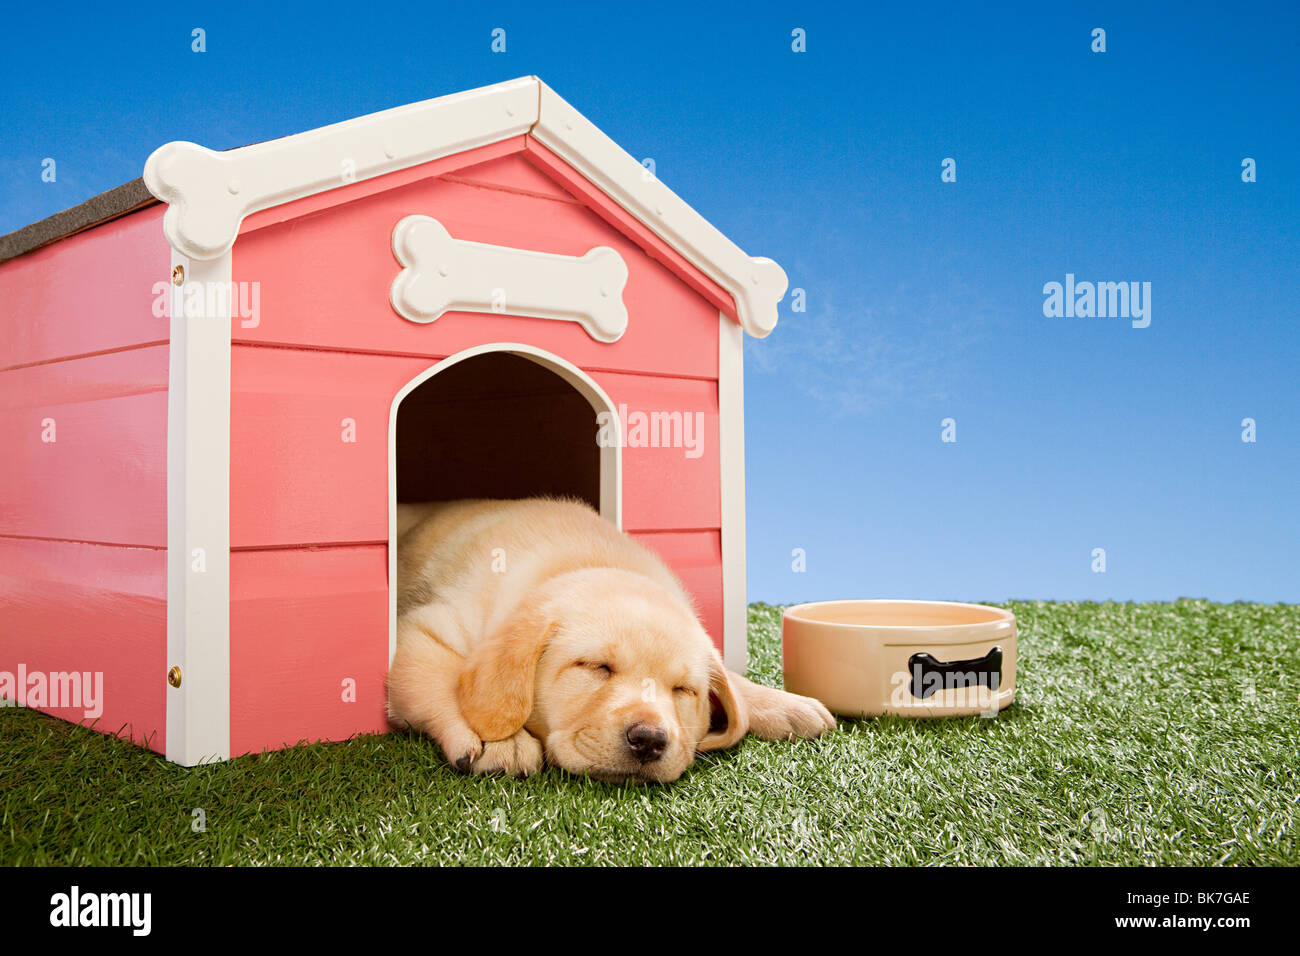 Labrador puppy asleep in kennel - Stock Image